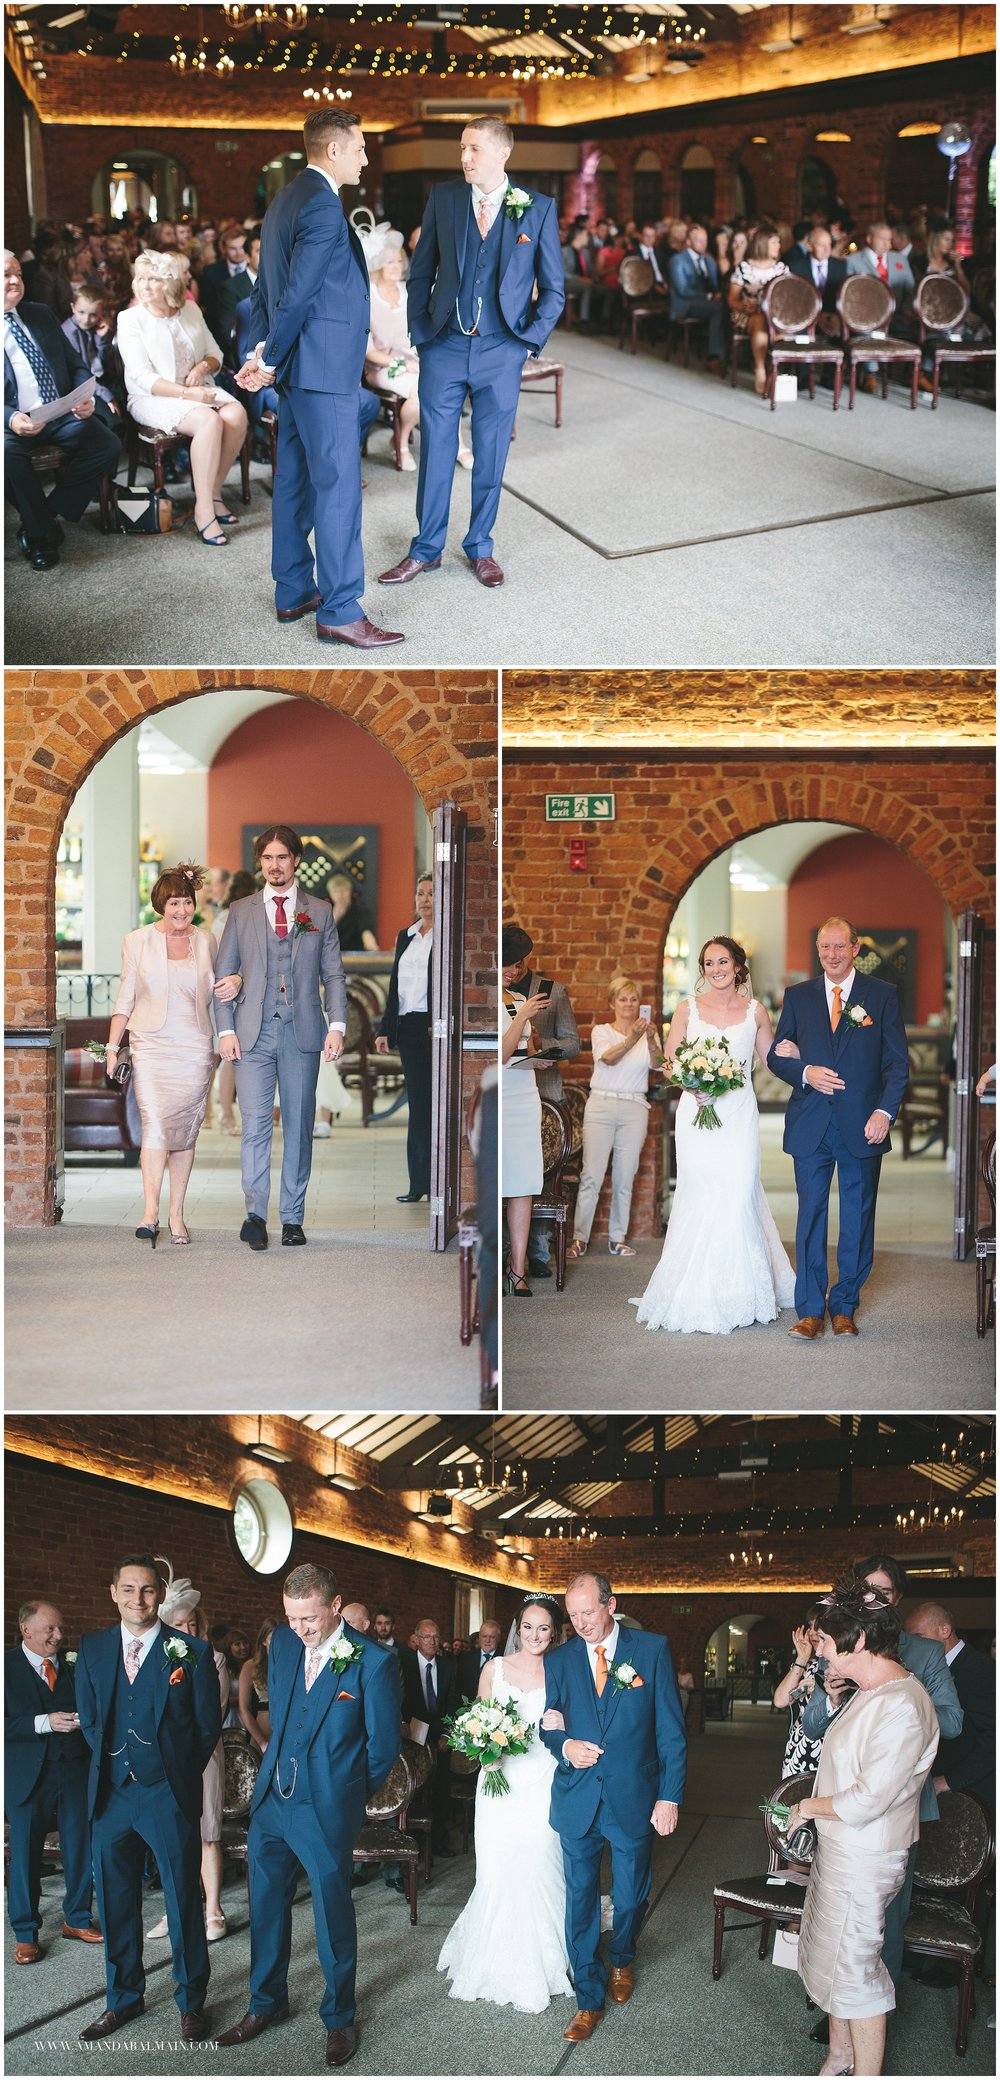 Sammi and Matt chose the hunting lodge for their ceremony and reception. I love the twinkle light wrapped beams. Sammi's brother walked her Mum down the aisle before Sammi entered looking radiant on her father's arm.